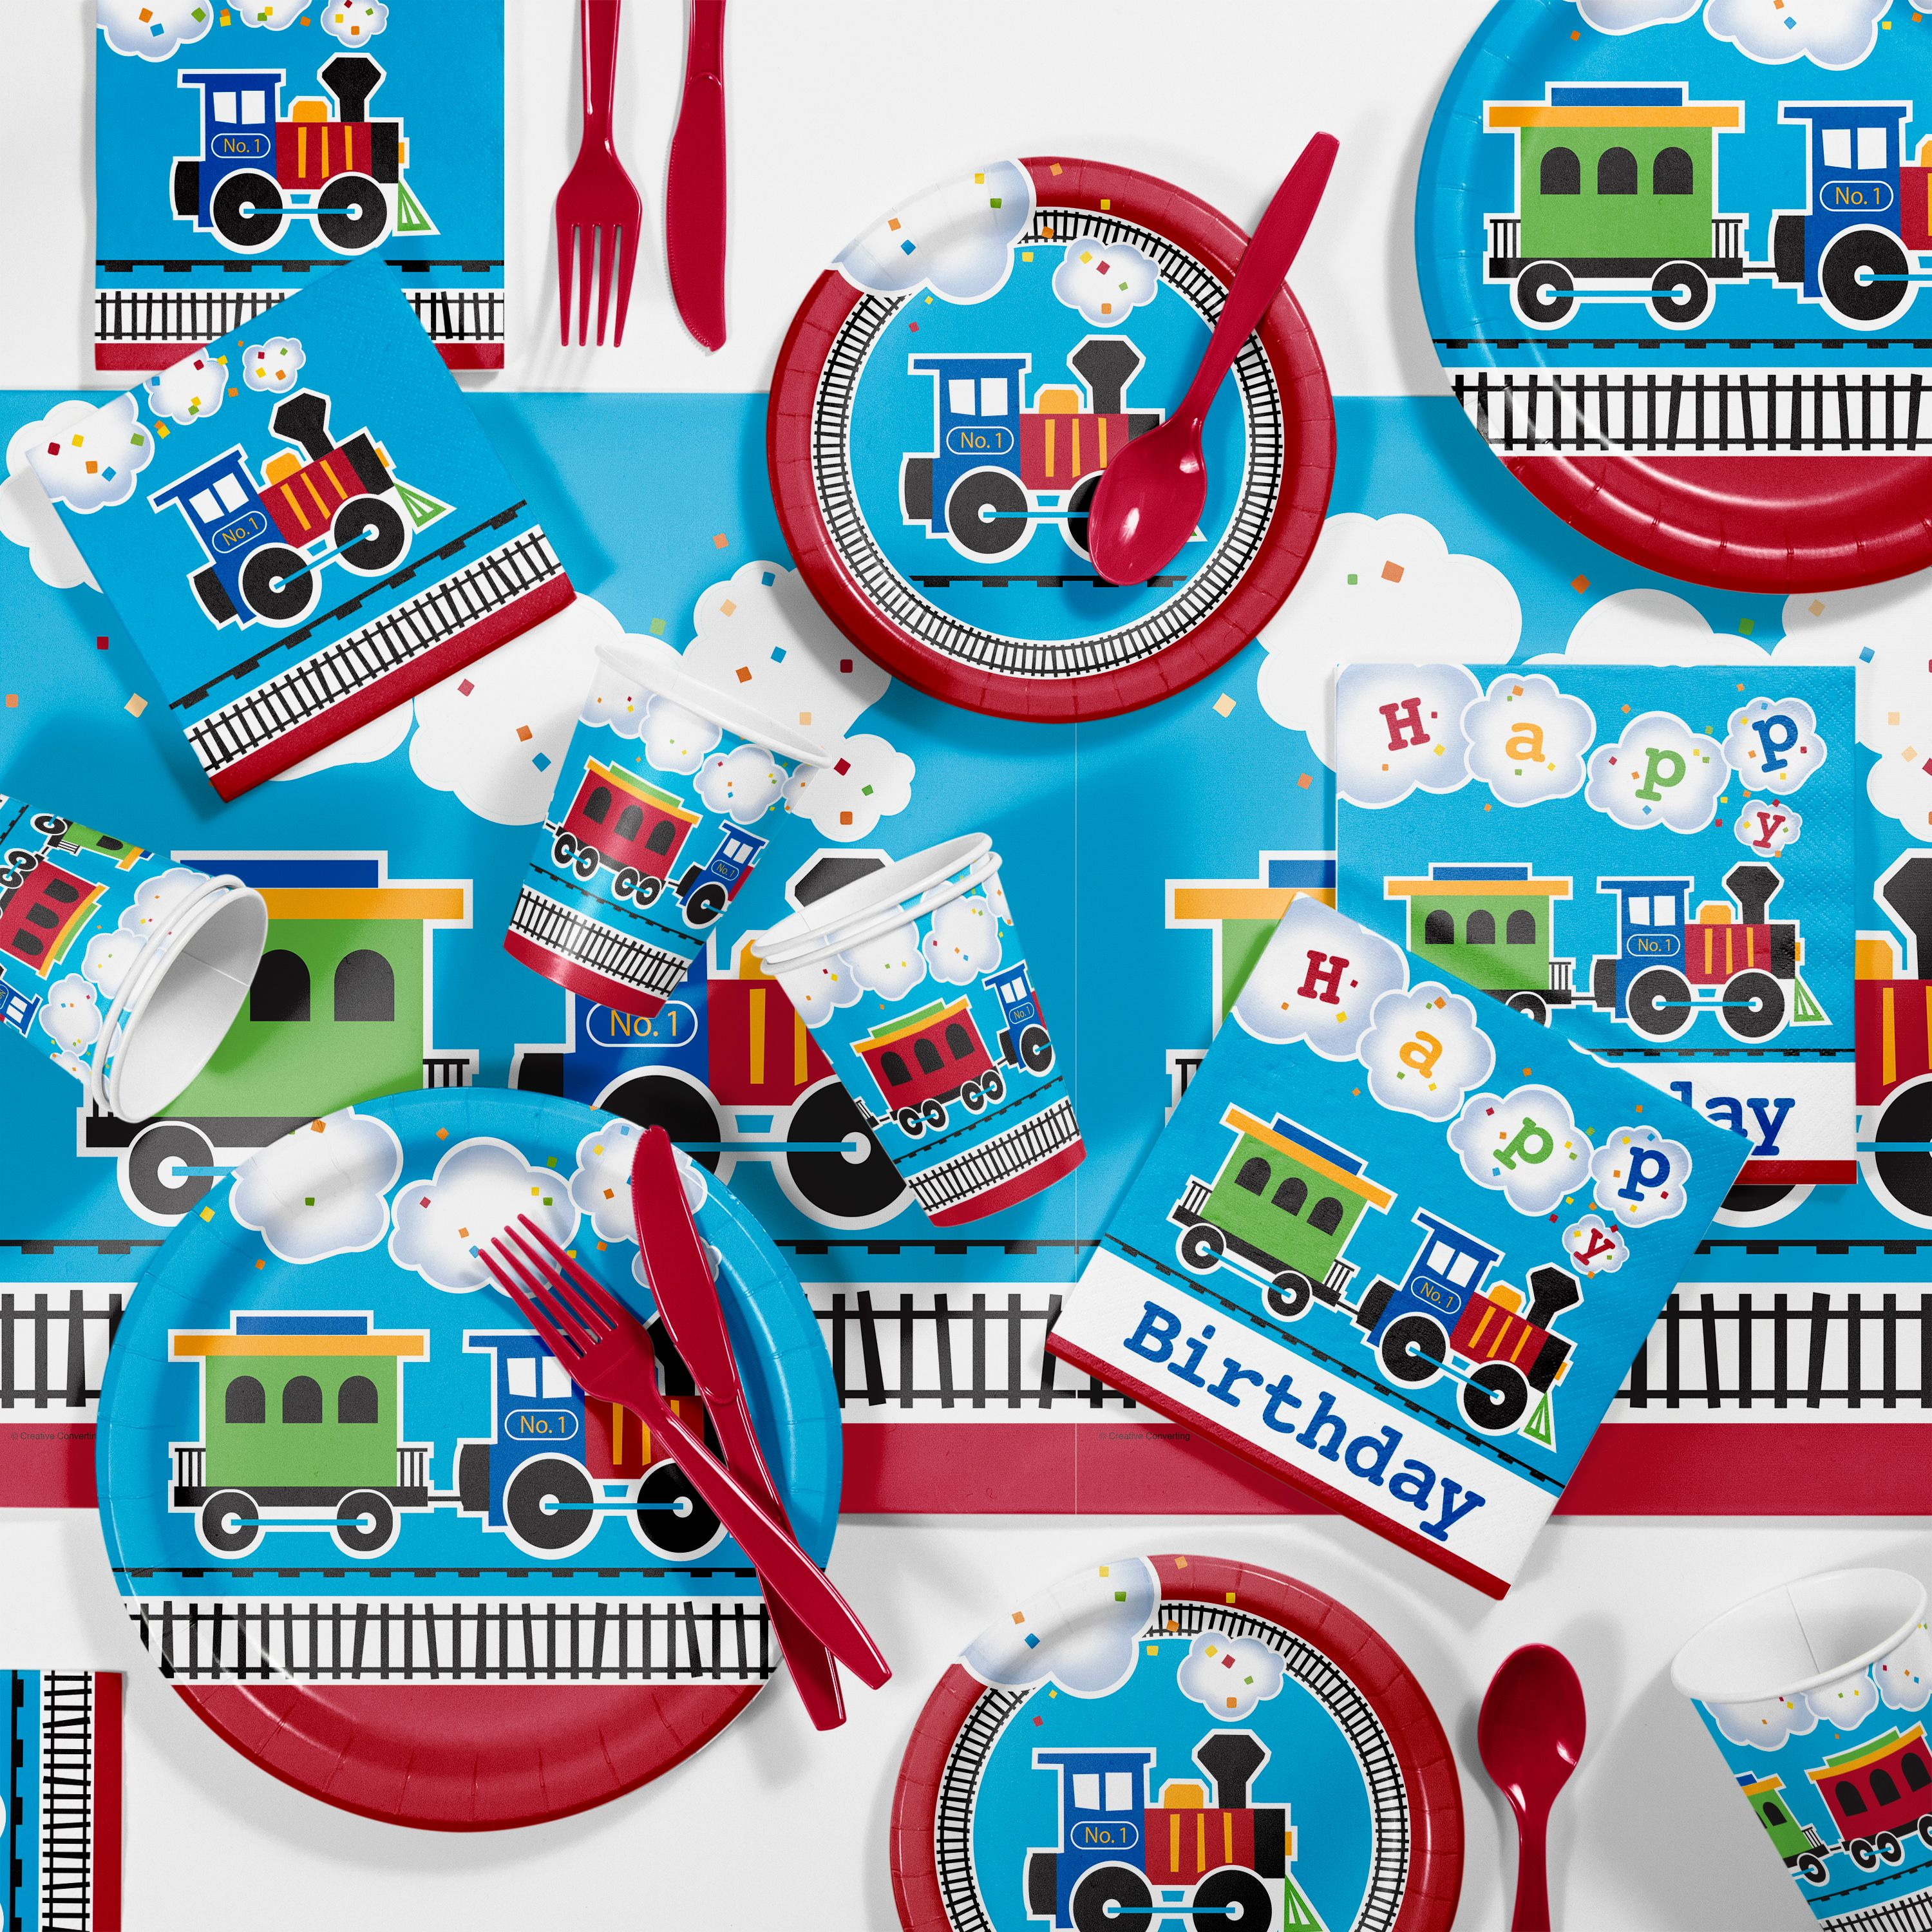 All Aboard Train Birthday Party Supplies Kit  sc 1 st  Walmart.com & Birthday Party Supplies